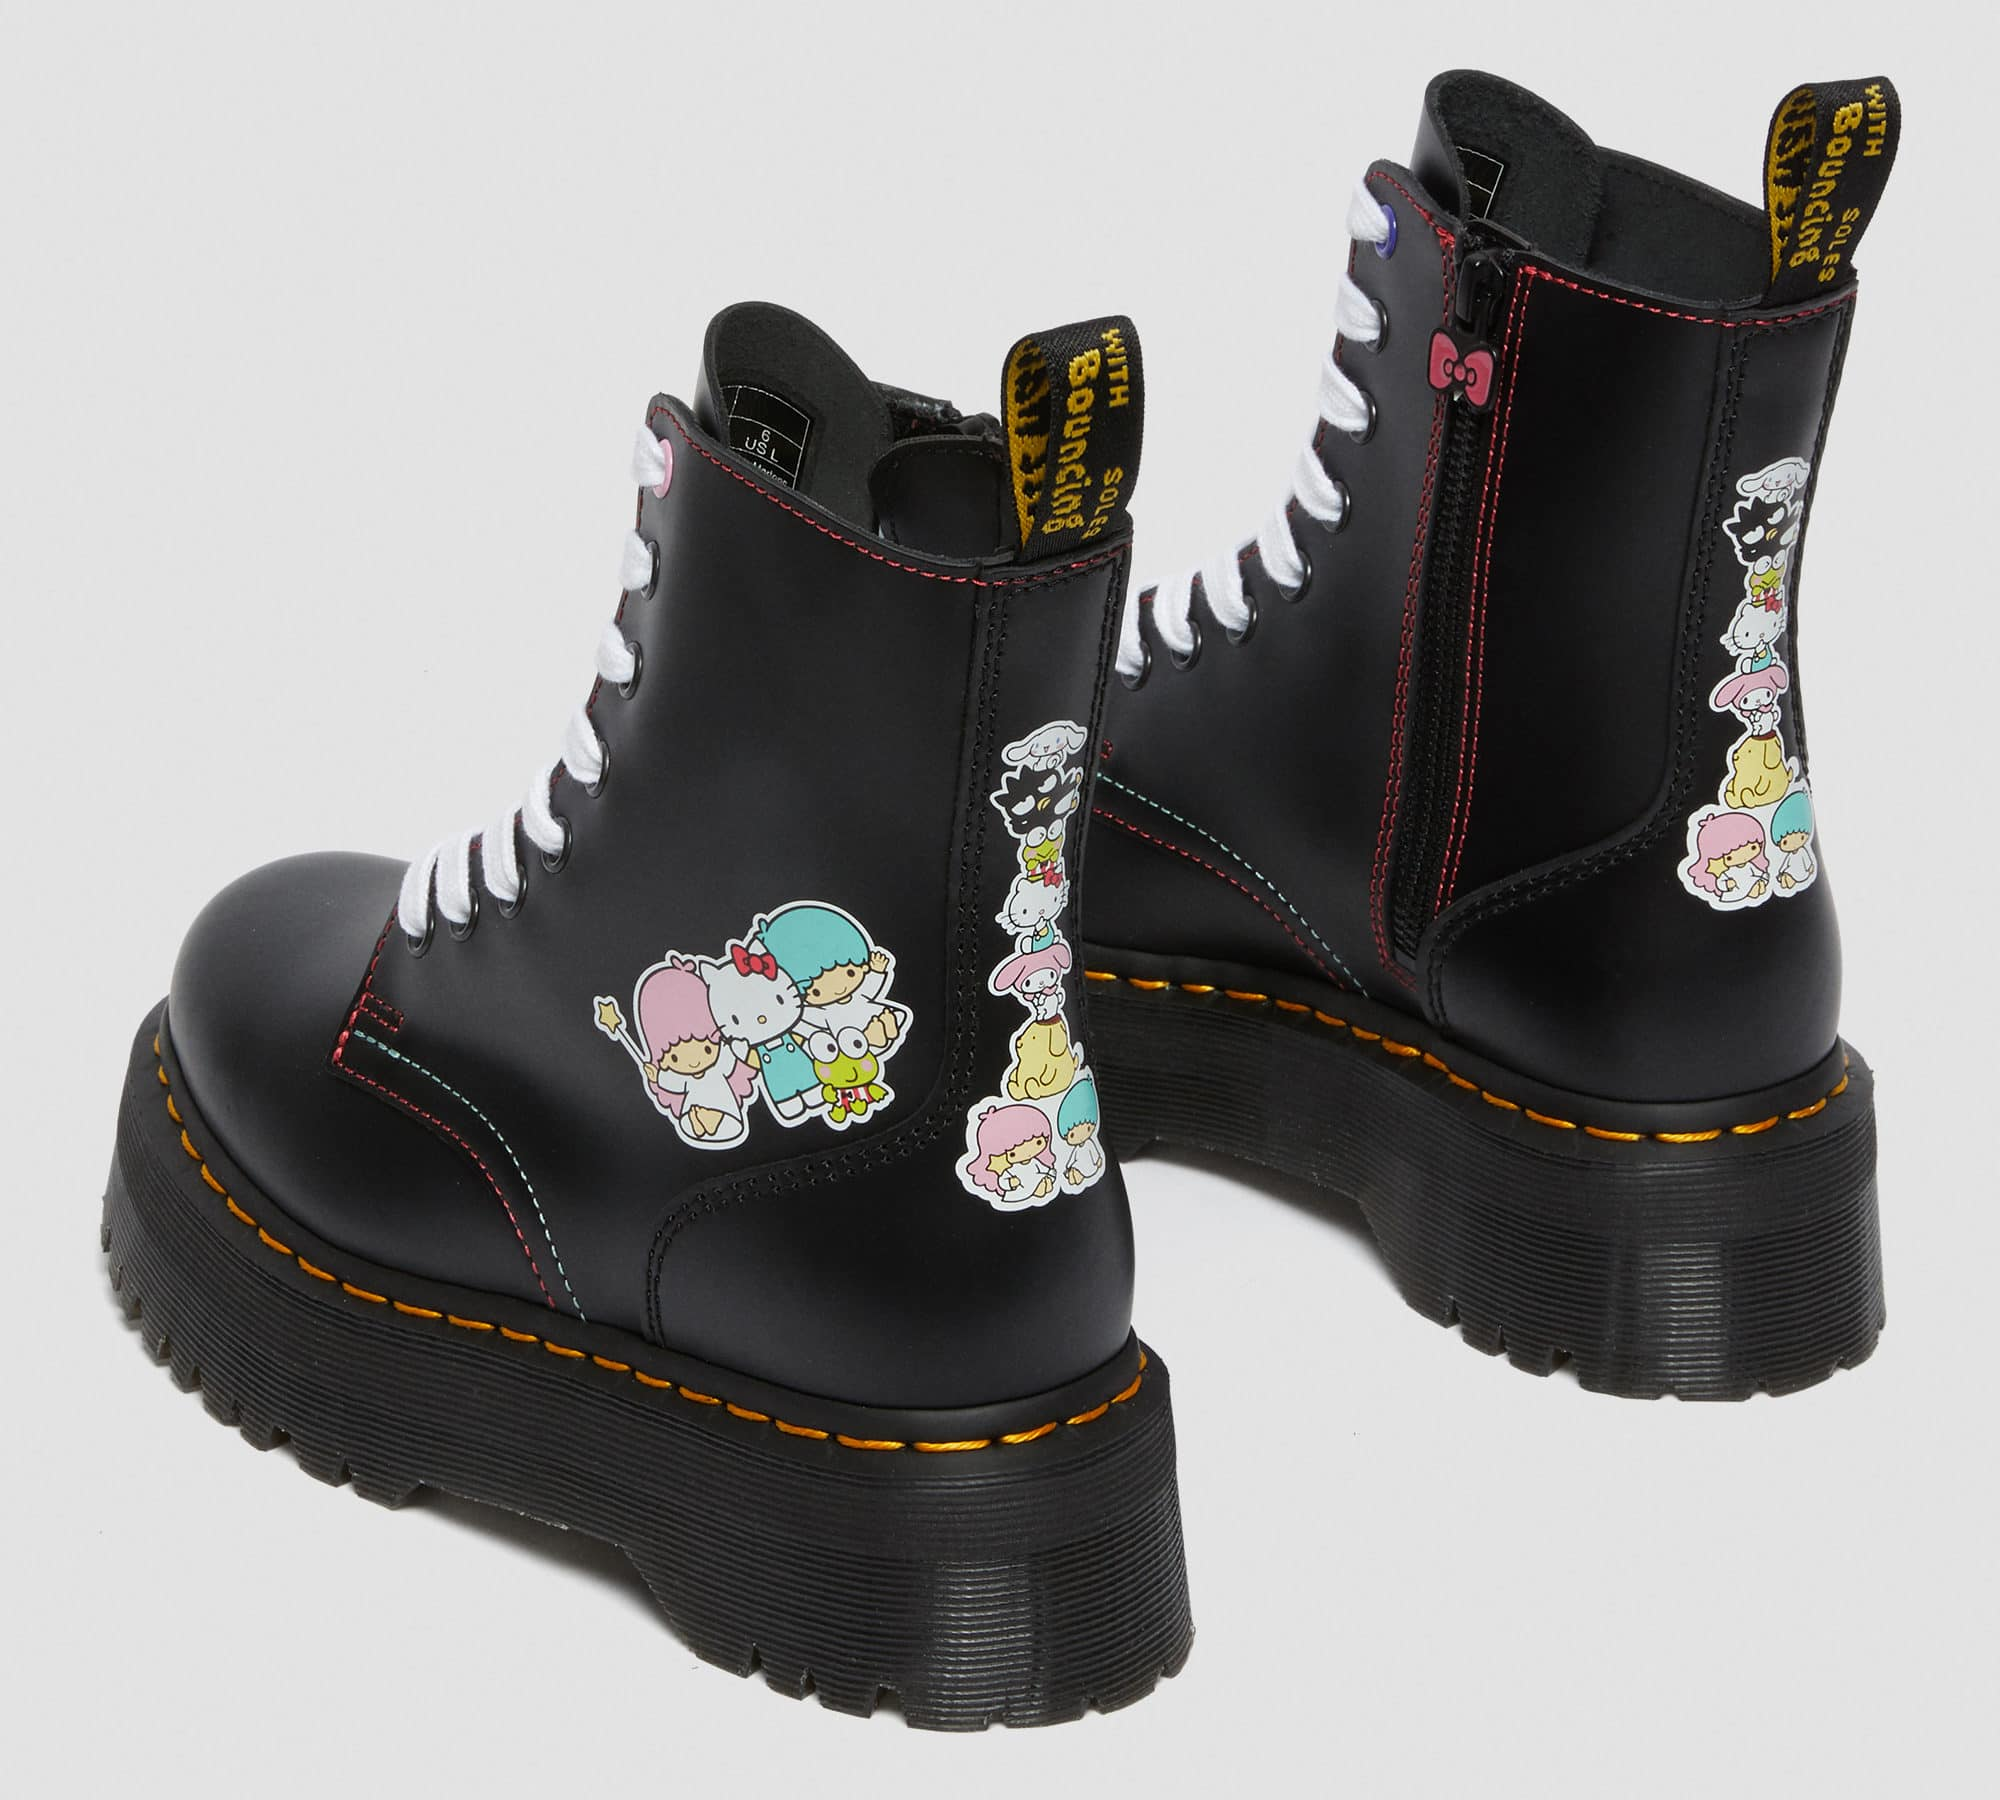 Dr. Martens boots get a cute makeover from Hello Kitty and Friends 12